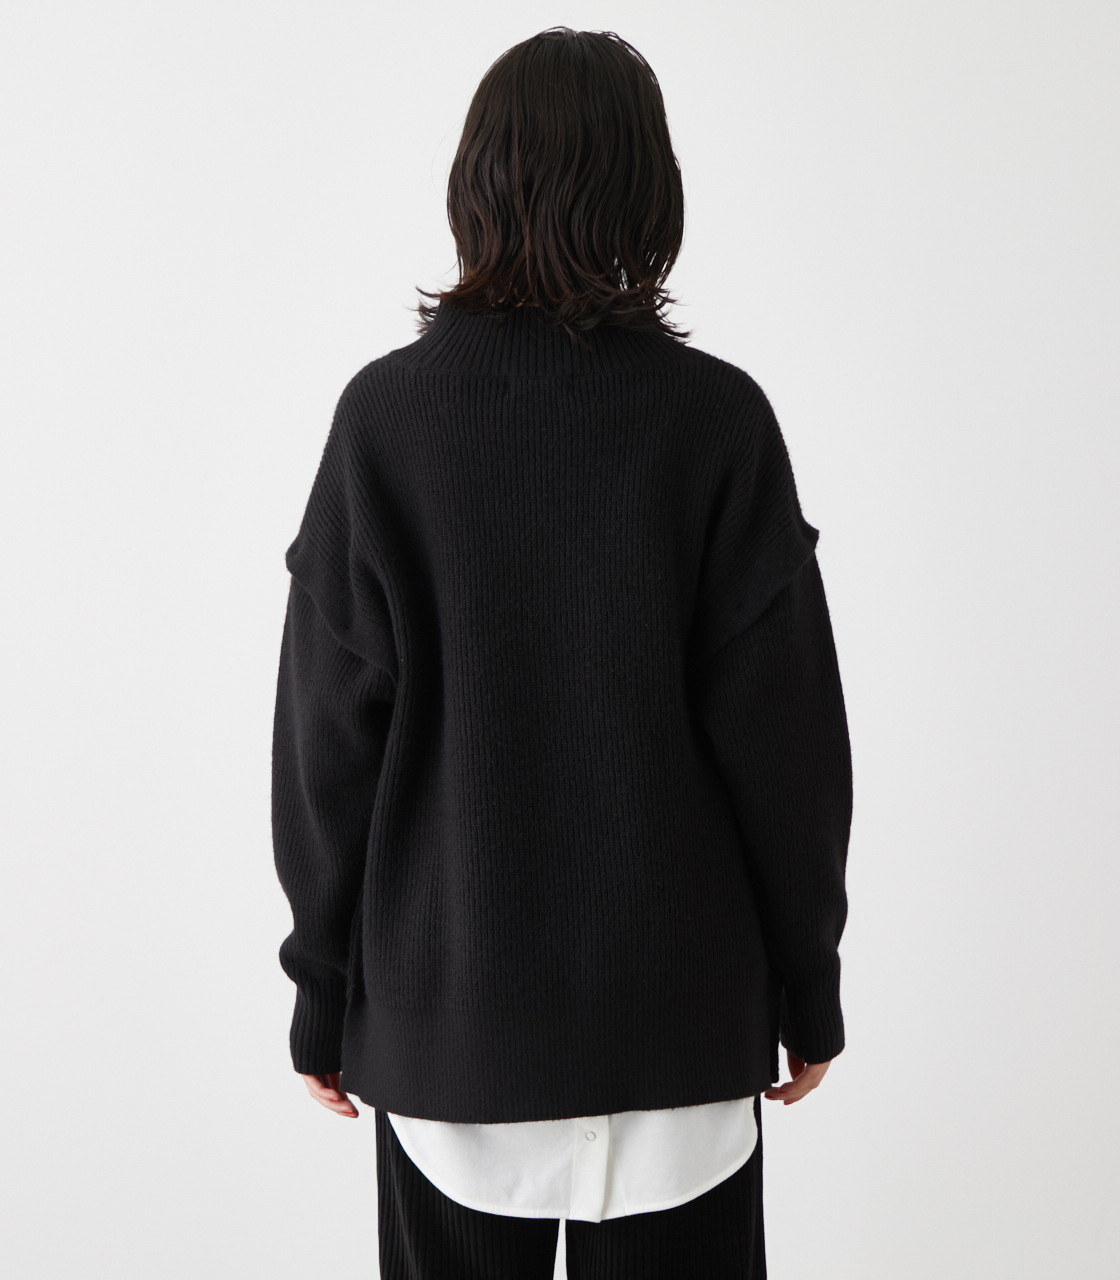 2WAY SLEEVE REMOVABLE TOPS/2WAYスリーブリムーバブルトップス 詳細画像 BLK 7